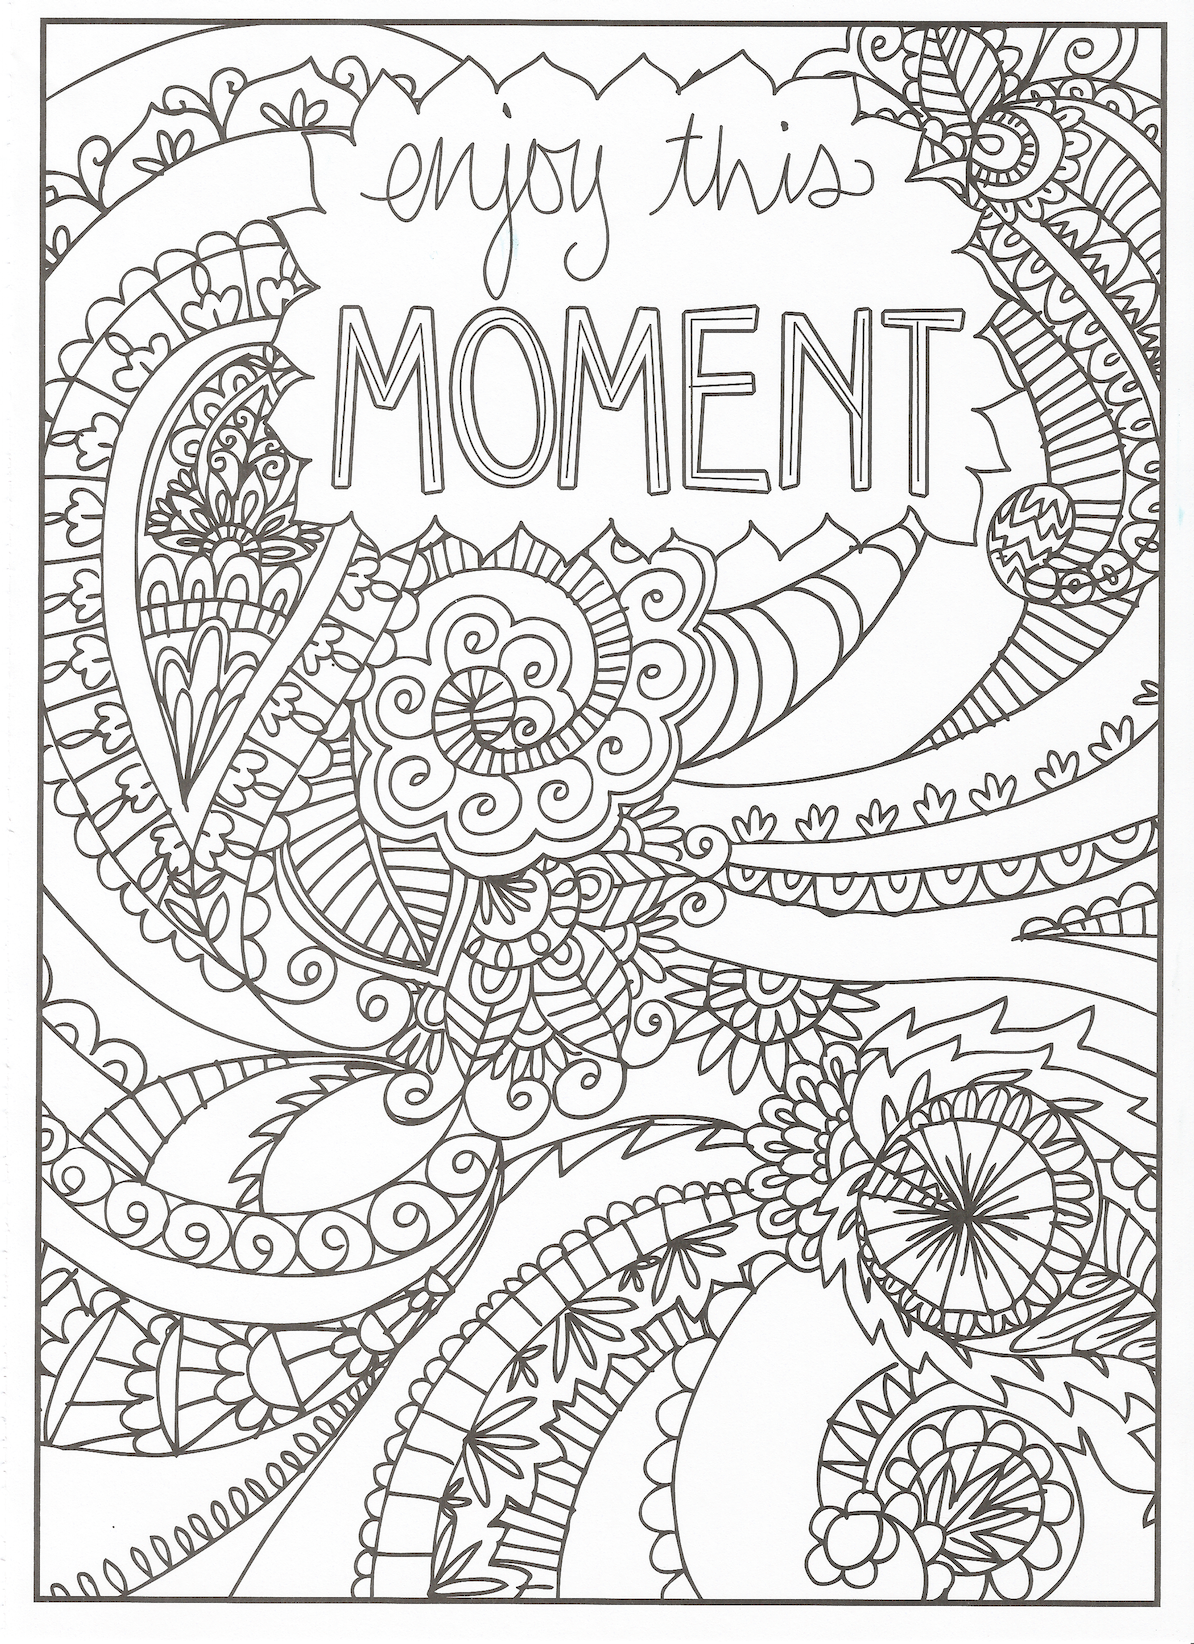 Timeless Creations Creative Quotes Coloring Page Enjoy This